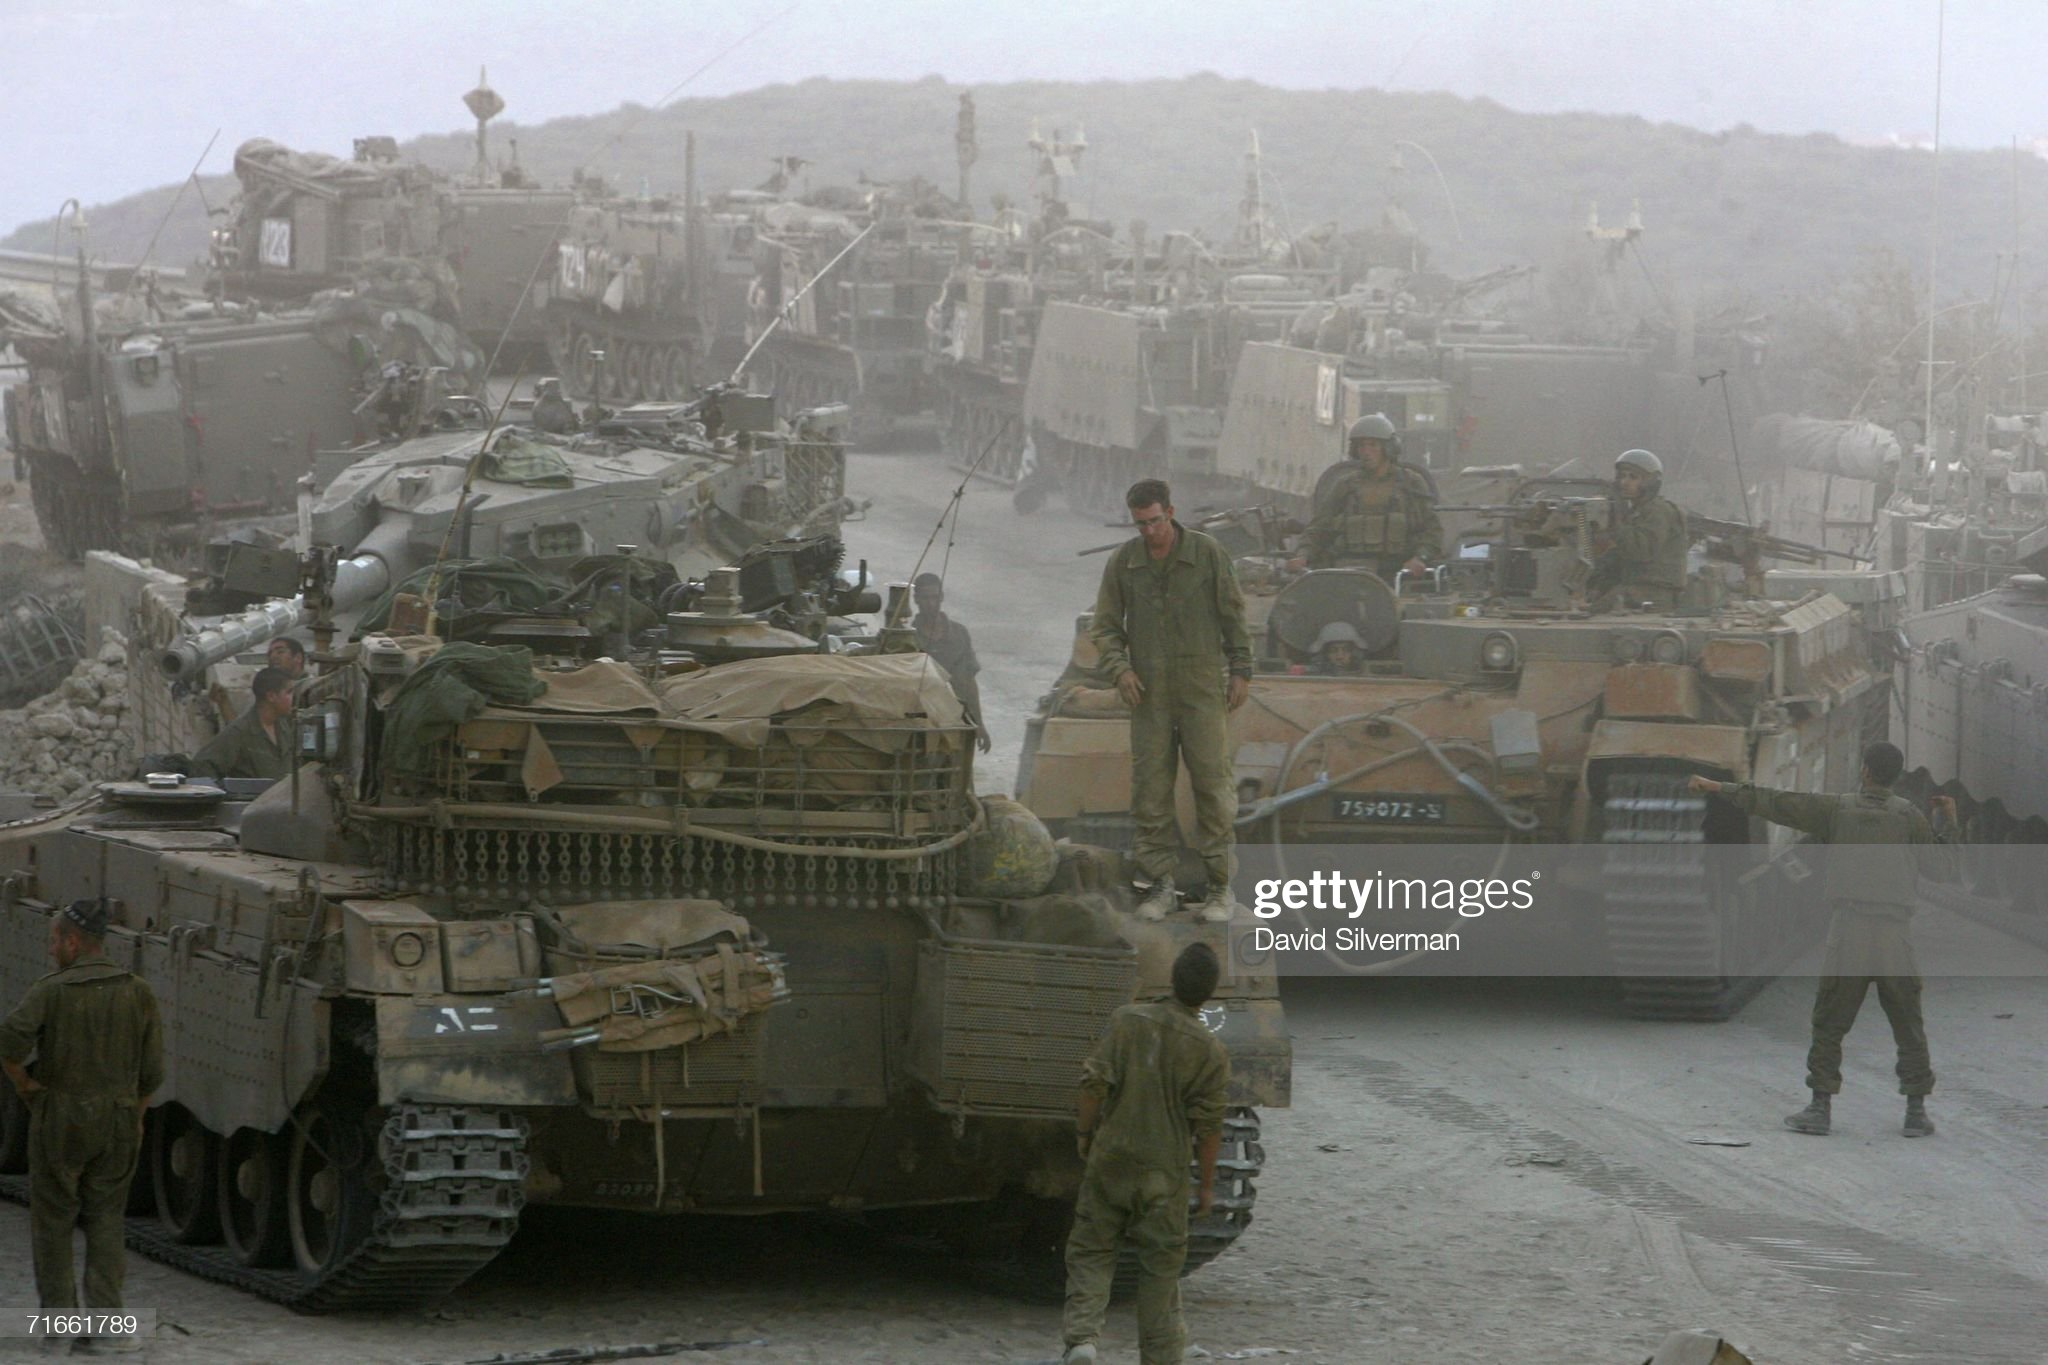 https://media.gettyimages.com/photos/an-israeli-armored-personnel-carrier-makes-its-way-through-tanks-and-picture-id71661789?s=2048x2048